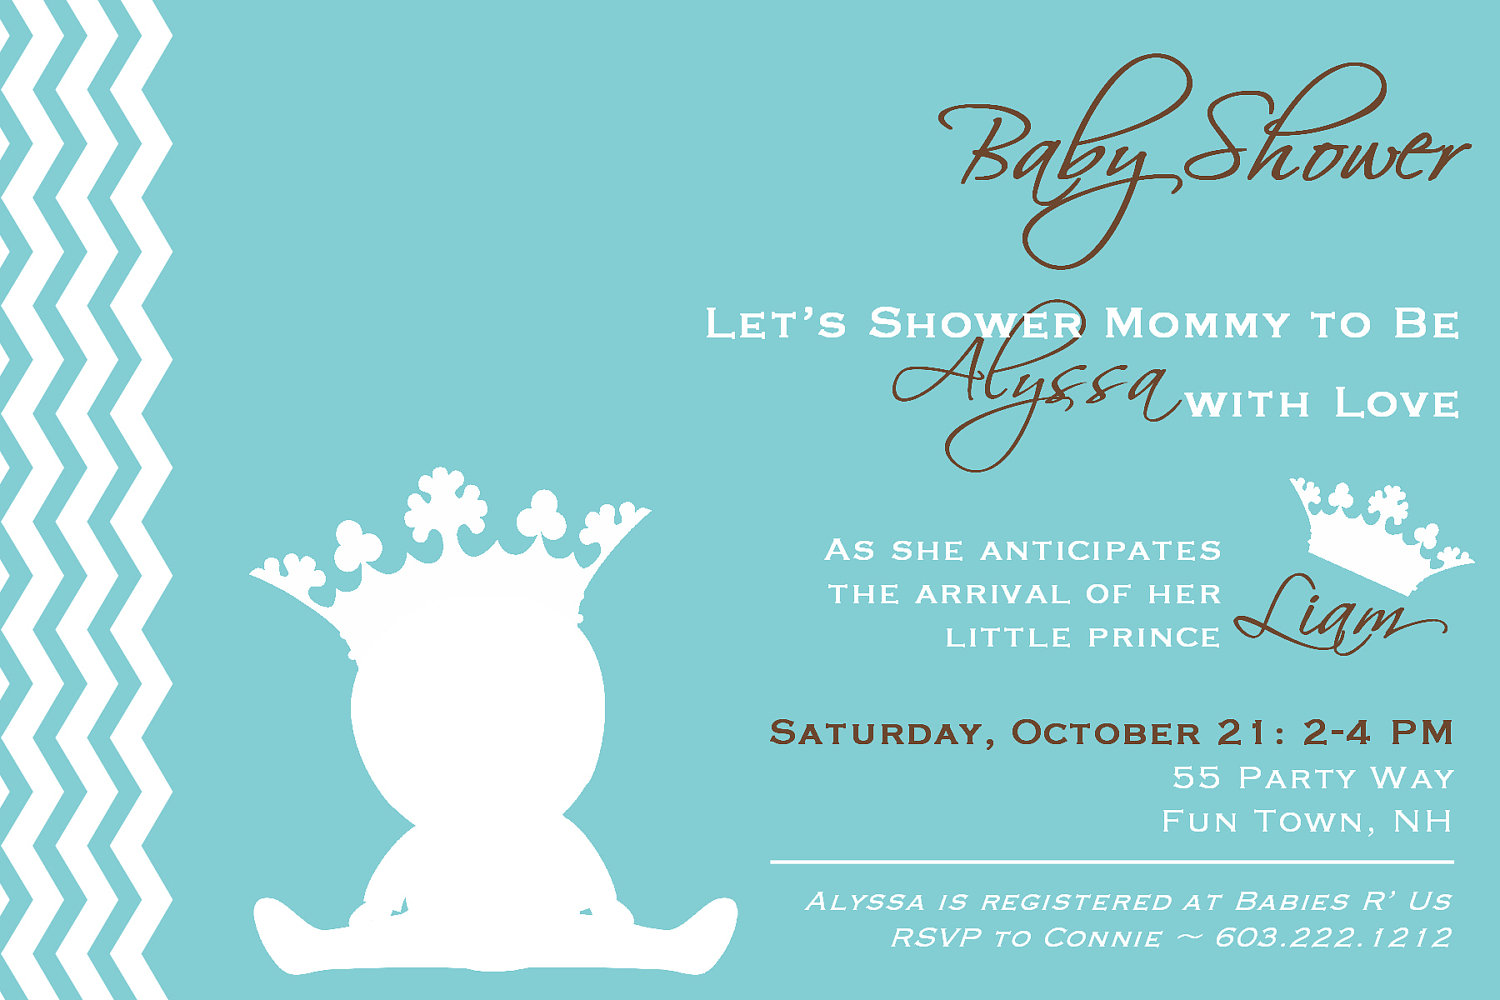 Prince baby shower invitations dolanpedia invitations template prince baby shower invitation filmwisefo